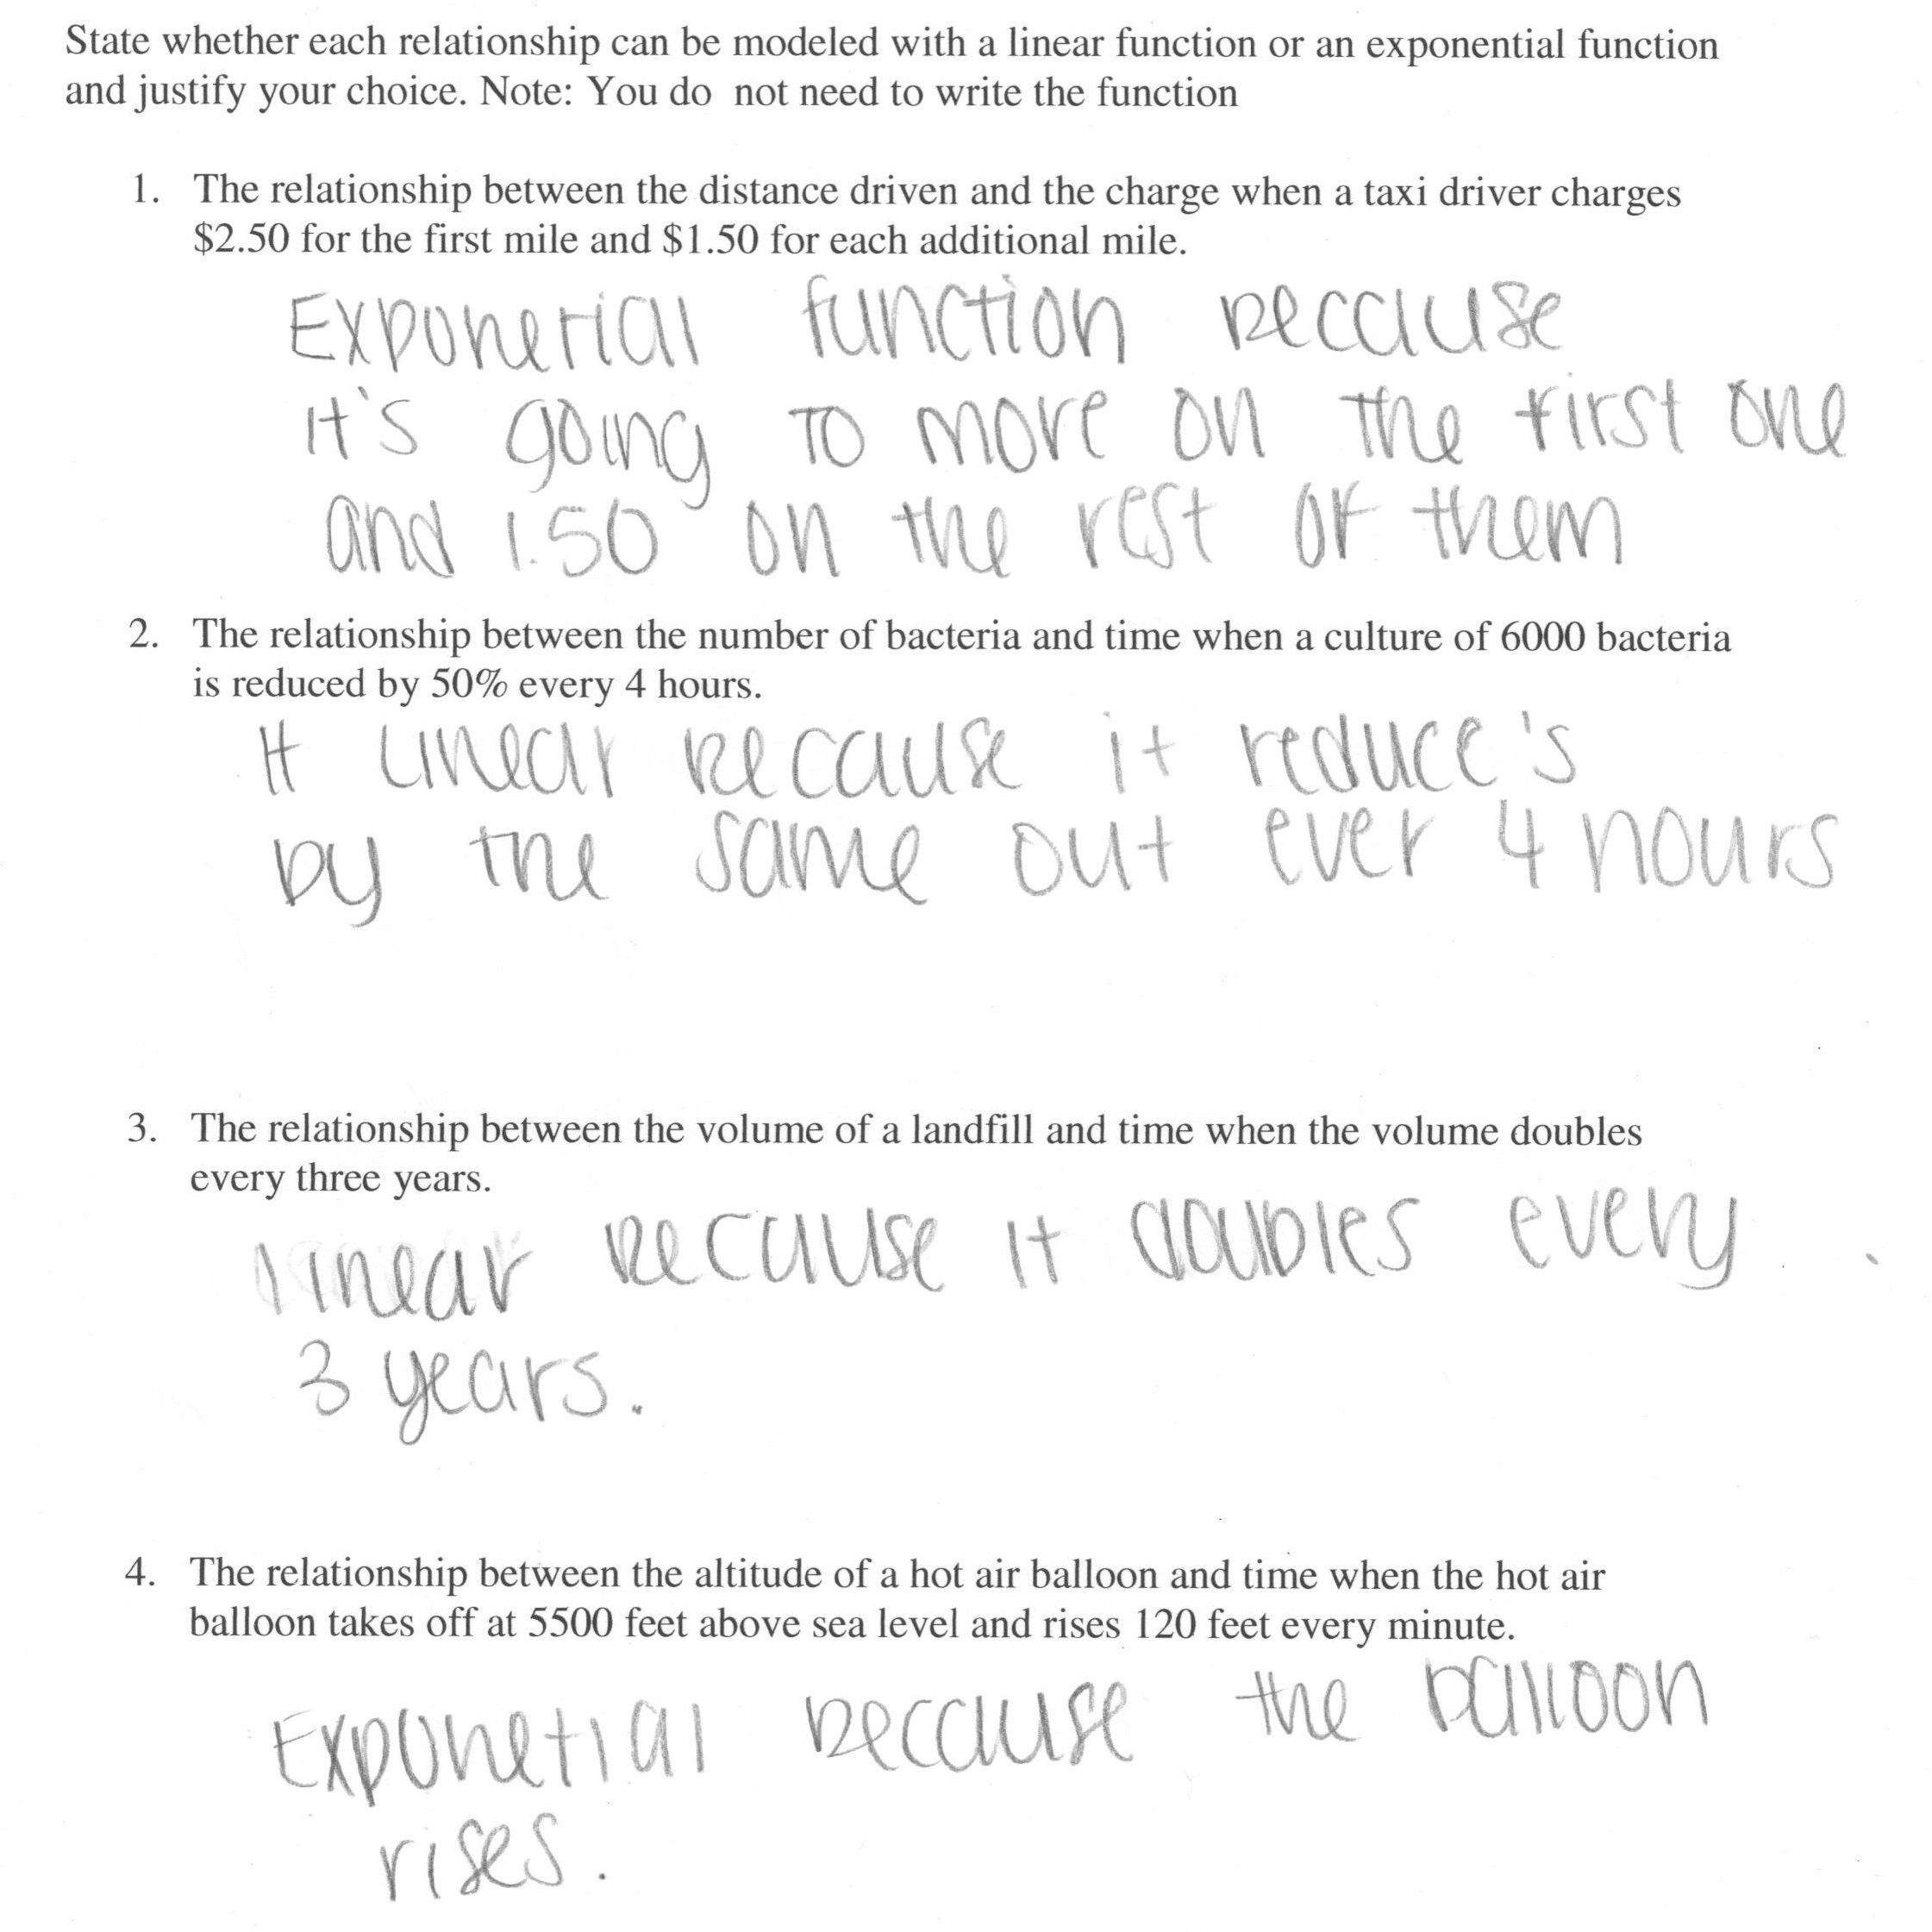 Linear Equations Word Problems Worksheet Luxury Ultimate Alge besides 17 Best Images of Linear Function Word Problems Worksheet Alge further Linear Problems Math Real World Linear Equations Tables And Graphs in addition Quiz   Worksheet   Solving Word Problems with Linear Equations likewise Polynomial Function Math Degree Polynomial Function Polynomial as well  additionally Linear Equations Word Problems Worksheet With Answers The best also Direct Variation Practice Worksheet   Riddle   Fun     Math • Middle together with Help with word problems – Logan Square Auditorium additionally function table word problems worksheets further Math Problems In Alge How To Solve Basic Linear Function Word also  in addition  likewise Solving Algeic Word Problems Worksheets Alge Word Problems in addition Precalculus  Function Word Problem Worksheet   1 A limoirsine besides . on linear function word problems worksheet